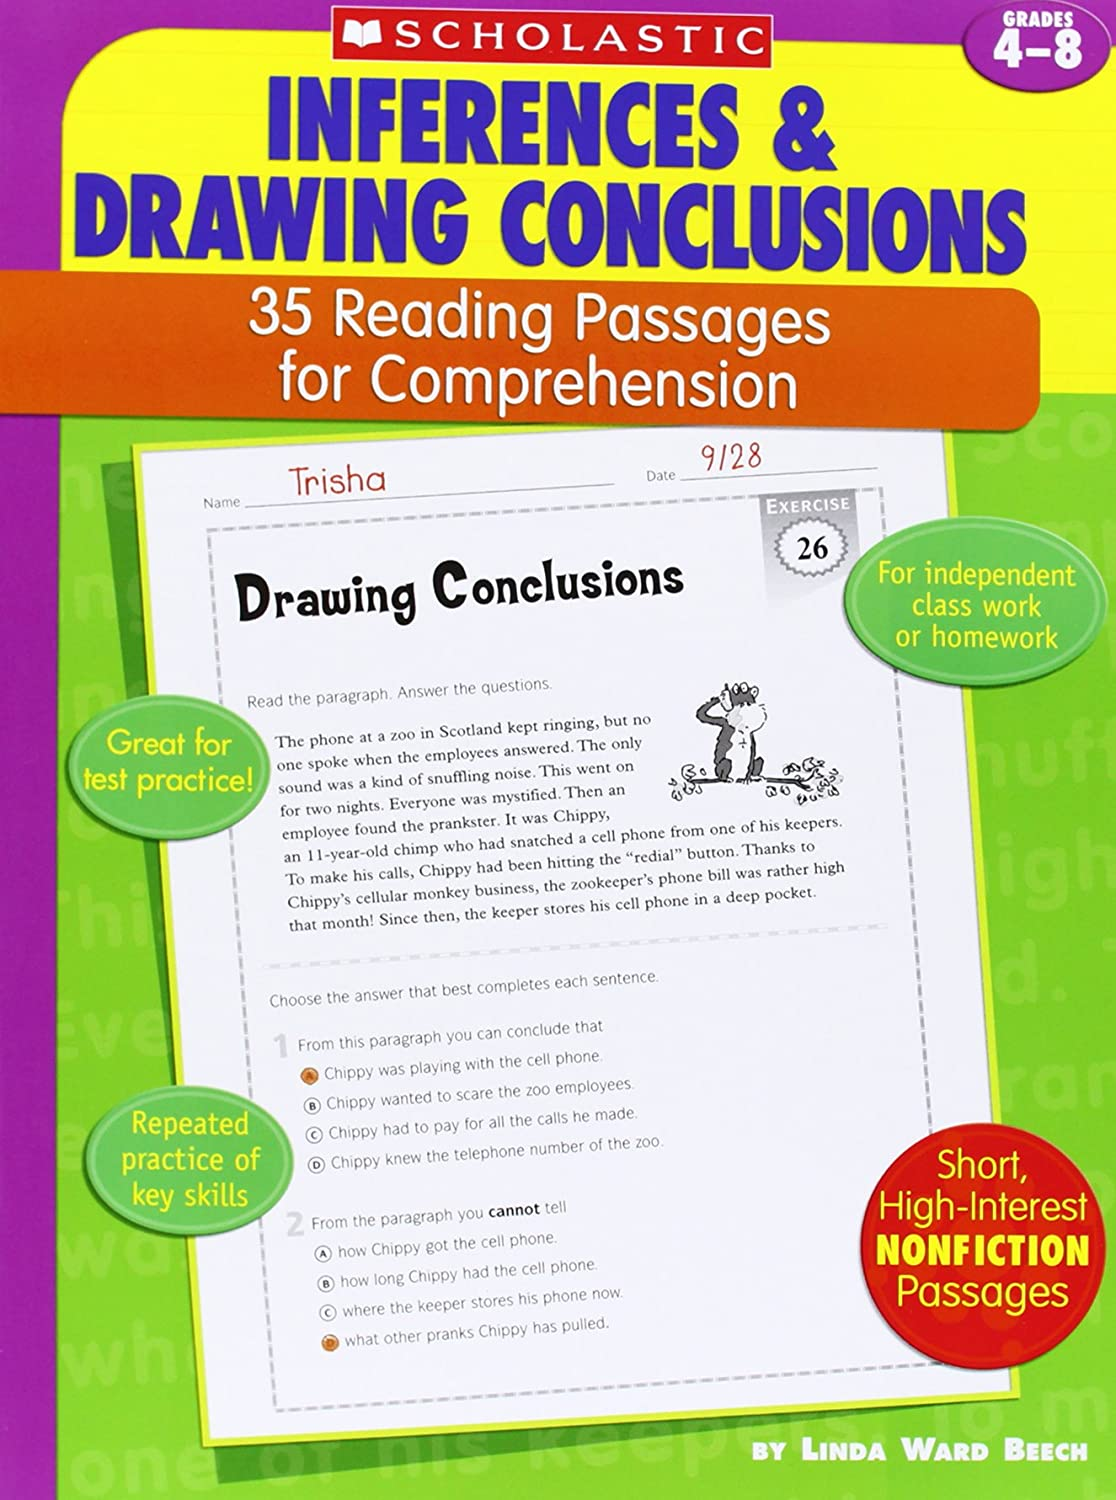 worksheet Drawing Conclusions Worksheets worksheet drawing conclusions worksheets 5th grade grass fedjp amazon com 35 reading passages for comprehension inferences conclusions